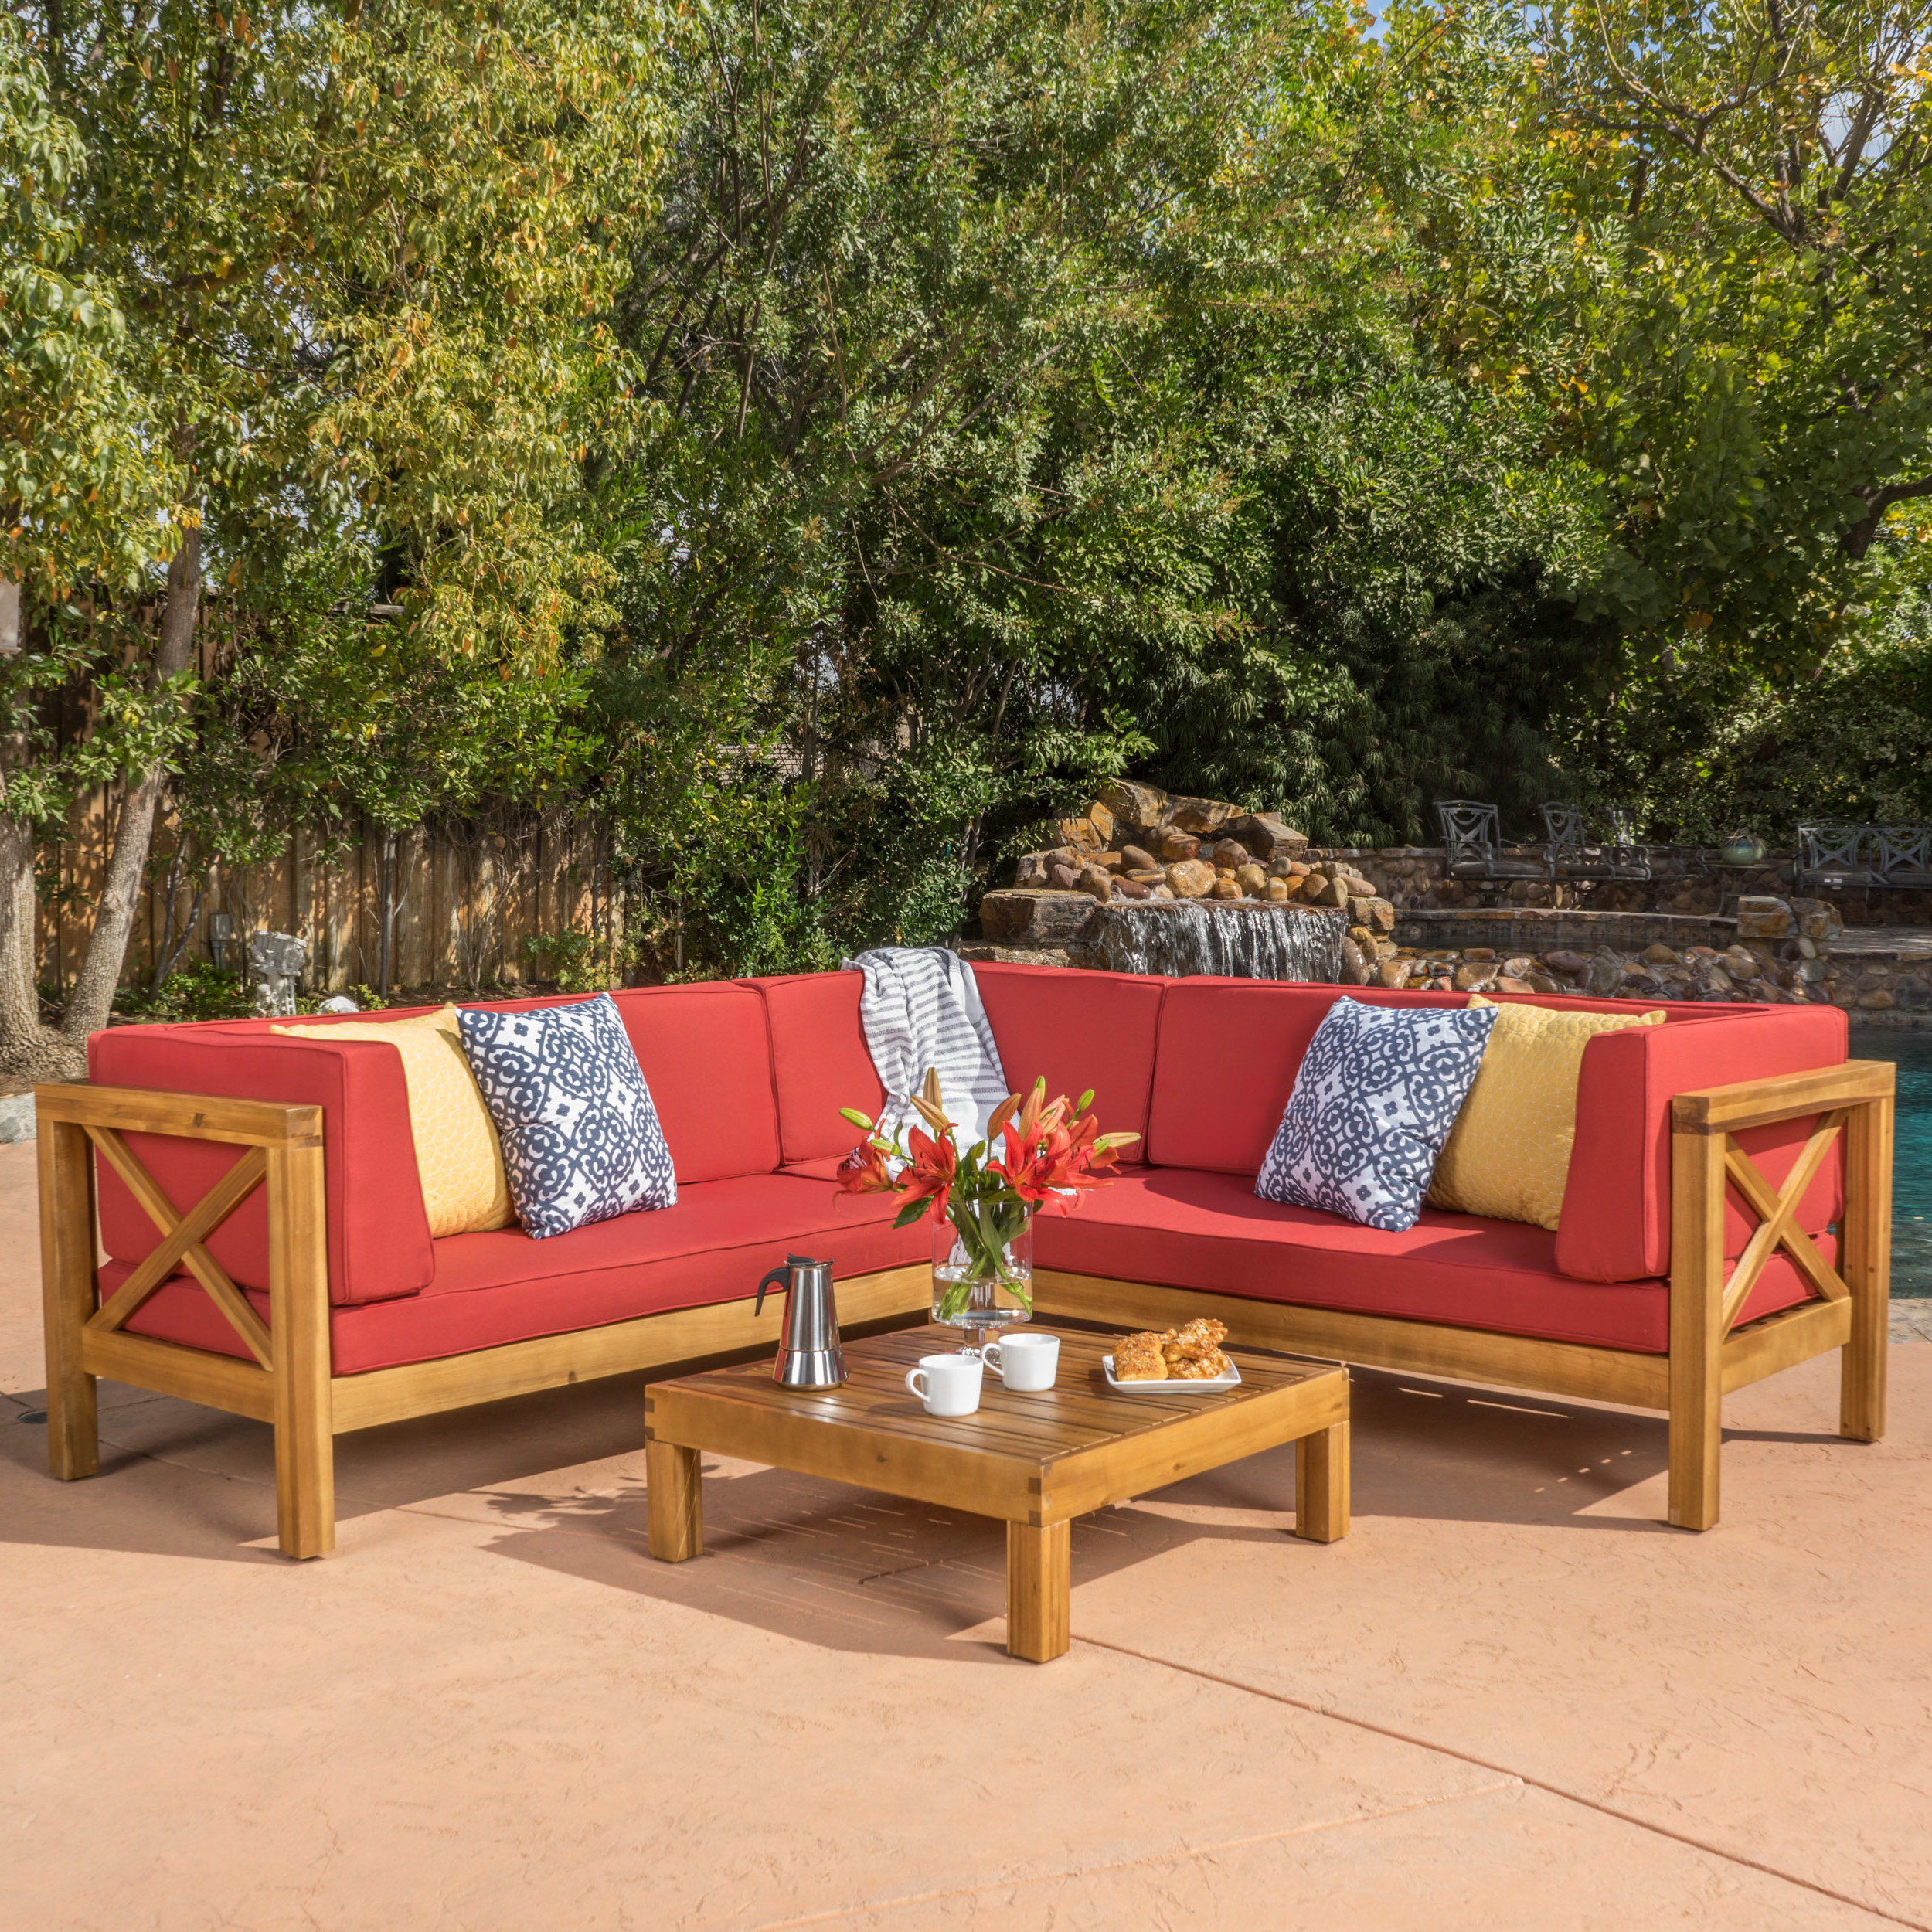 Ellison 4 Piece Sectional Seating Sofa Set With Cushions Inside Popular Ellison Patio Sectionals With Cushions (View 4 of 20)